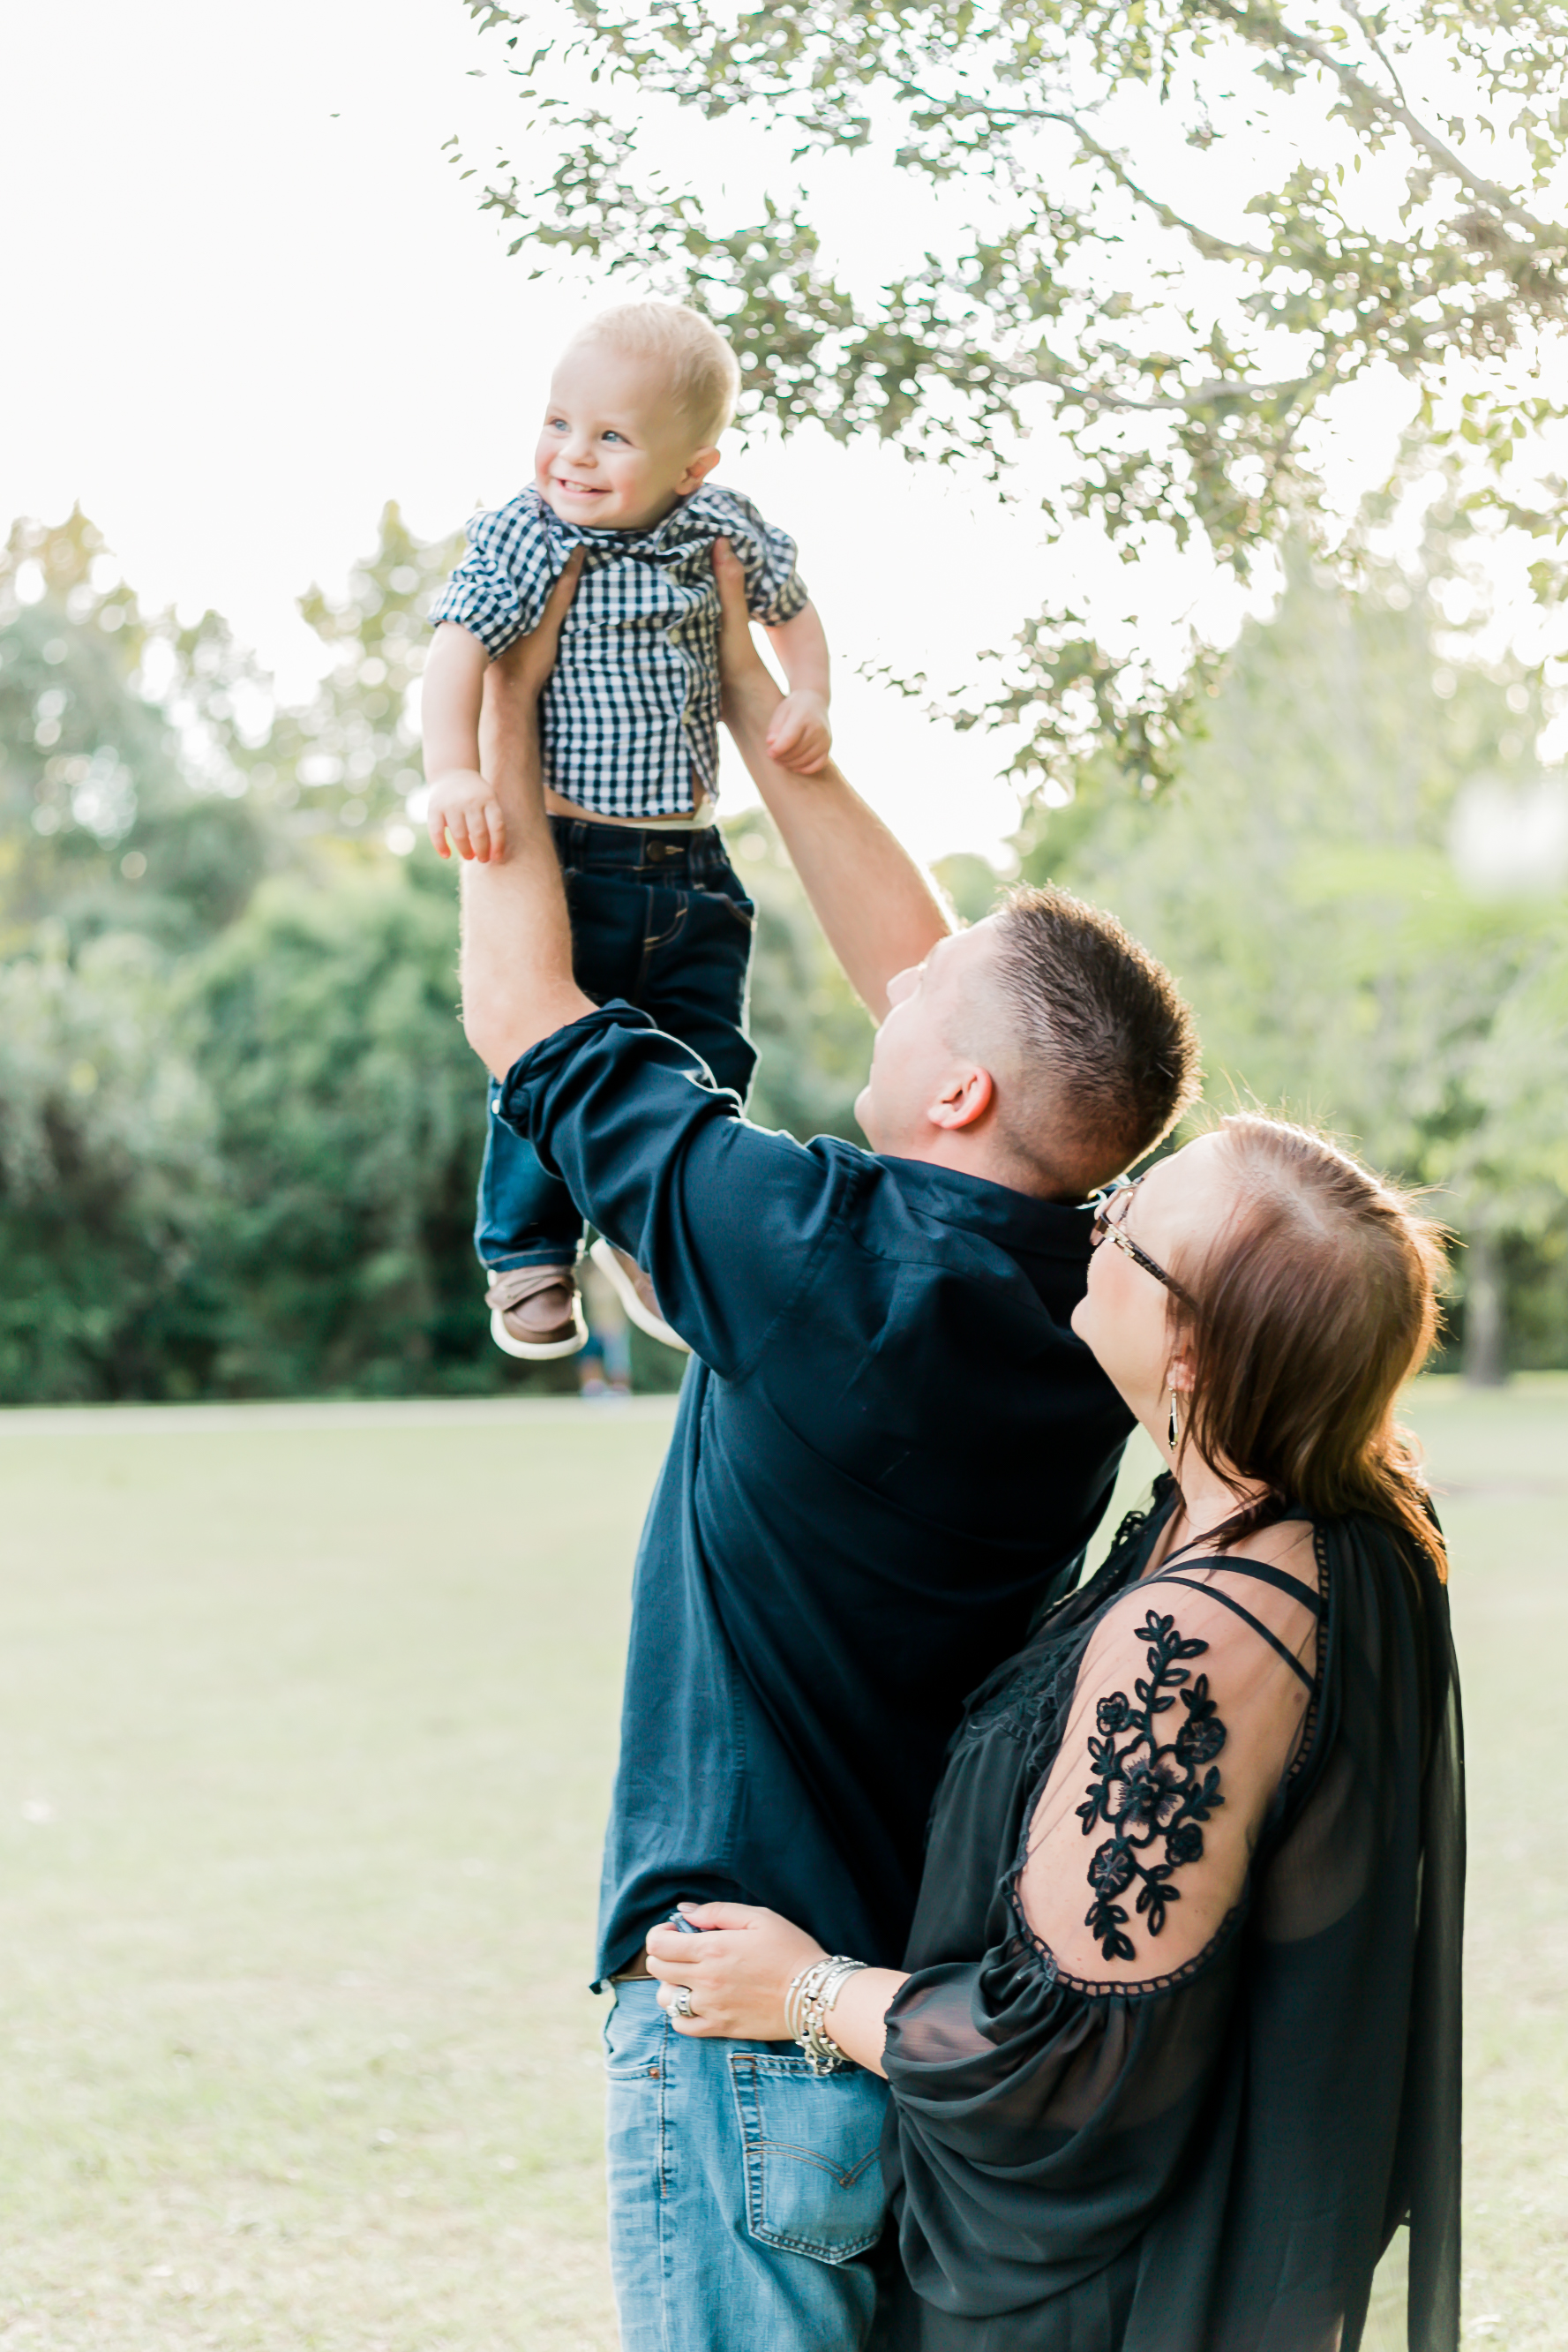 Hoelscher_FamilySession2018_ScreenRes-89.jpg